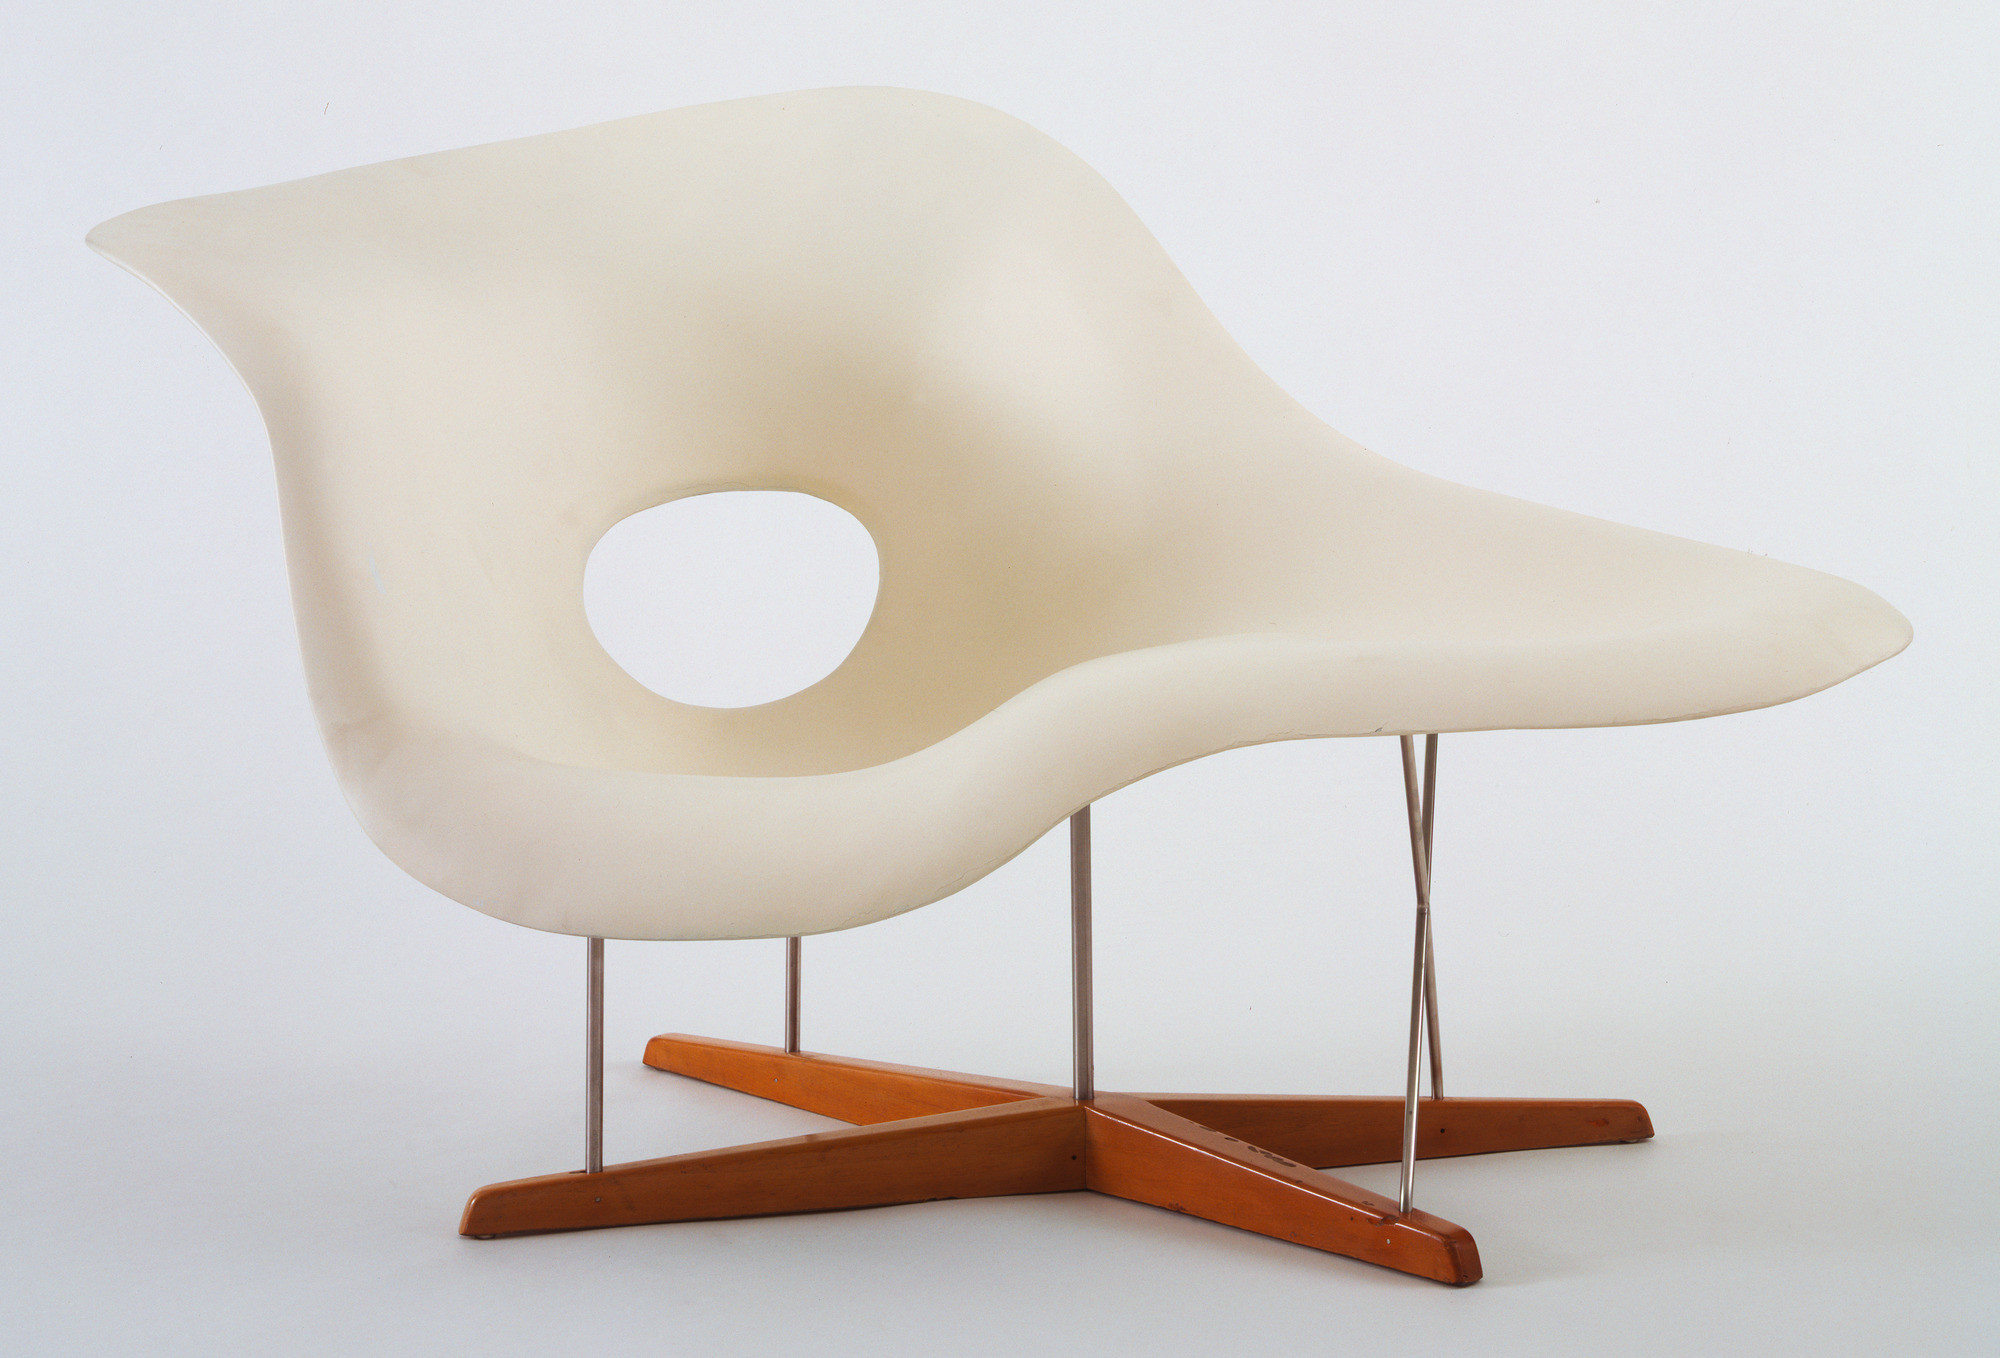 "Charles Eames, Ray Eames. Prototype for Chaise Longue (La Chaise). 1948. Hard rubber foam, plastic, wood, and metal, 32 1/2 x 59 x 34 1/4"" (82.5 x 149.8 x 87 cm). Gift of the designers"